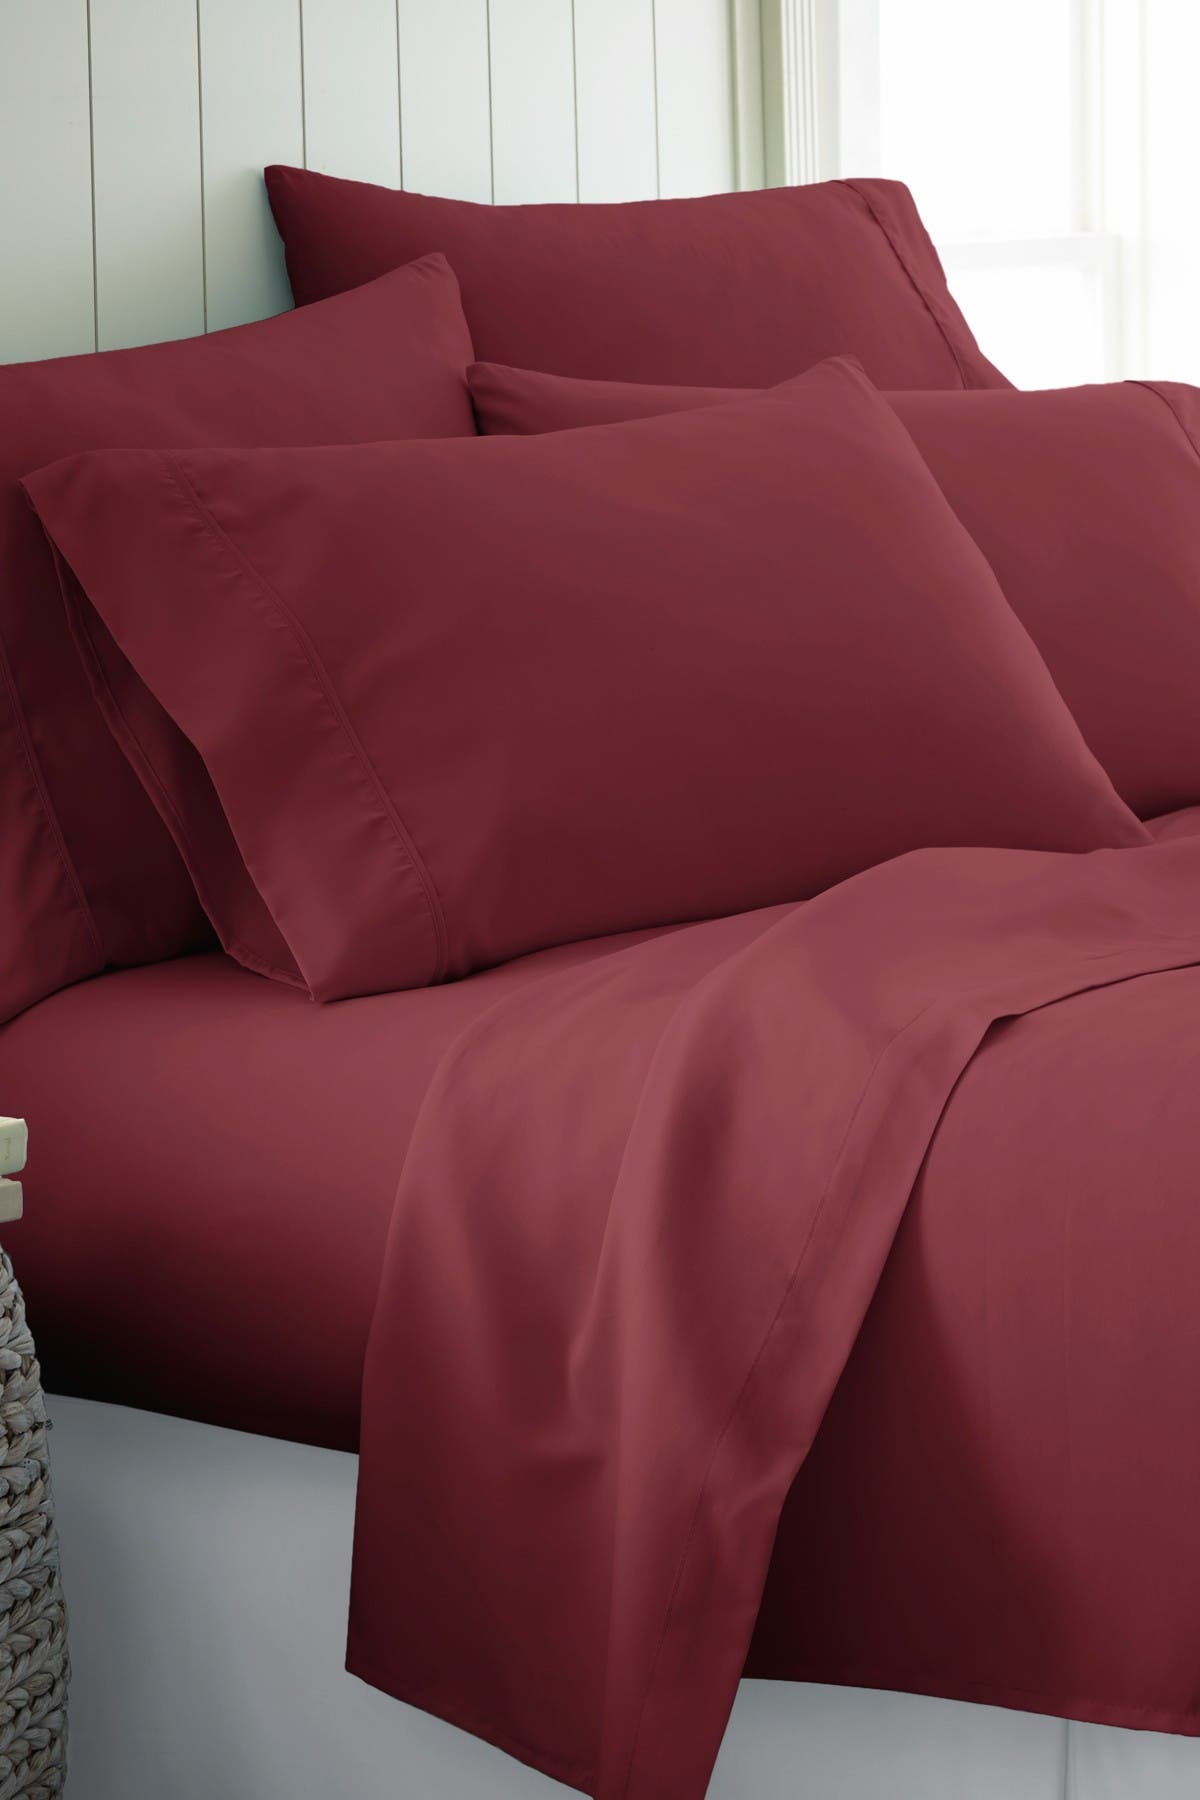 Image of IENJOY HOME Queen Hotel Collection Premium Ultra Soft 6-Piece Bed Sheet Set -Burgundy